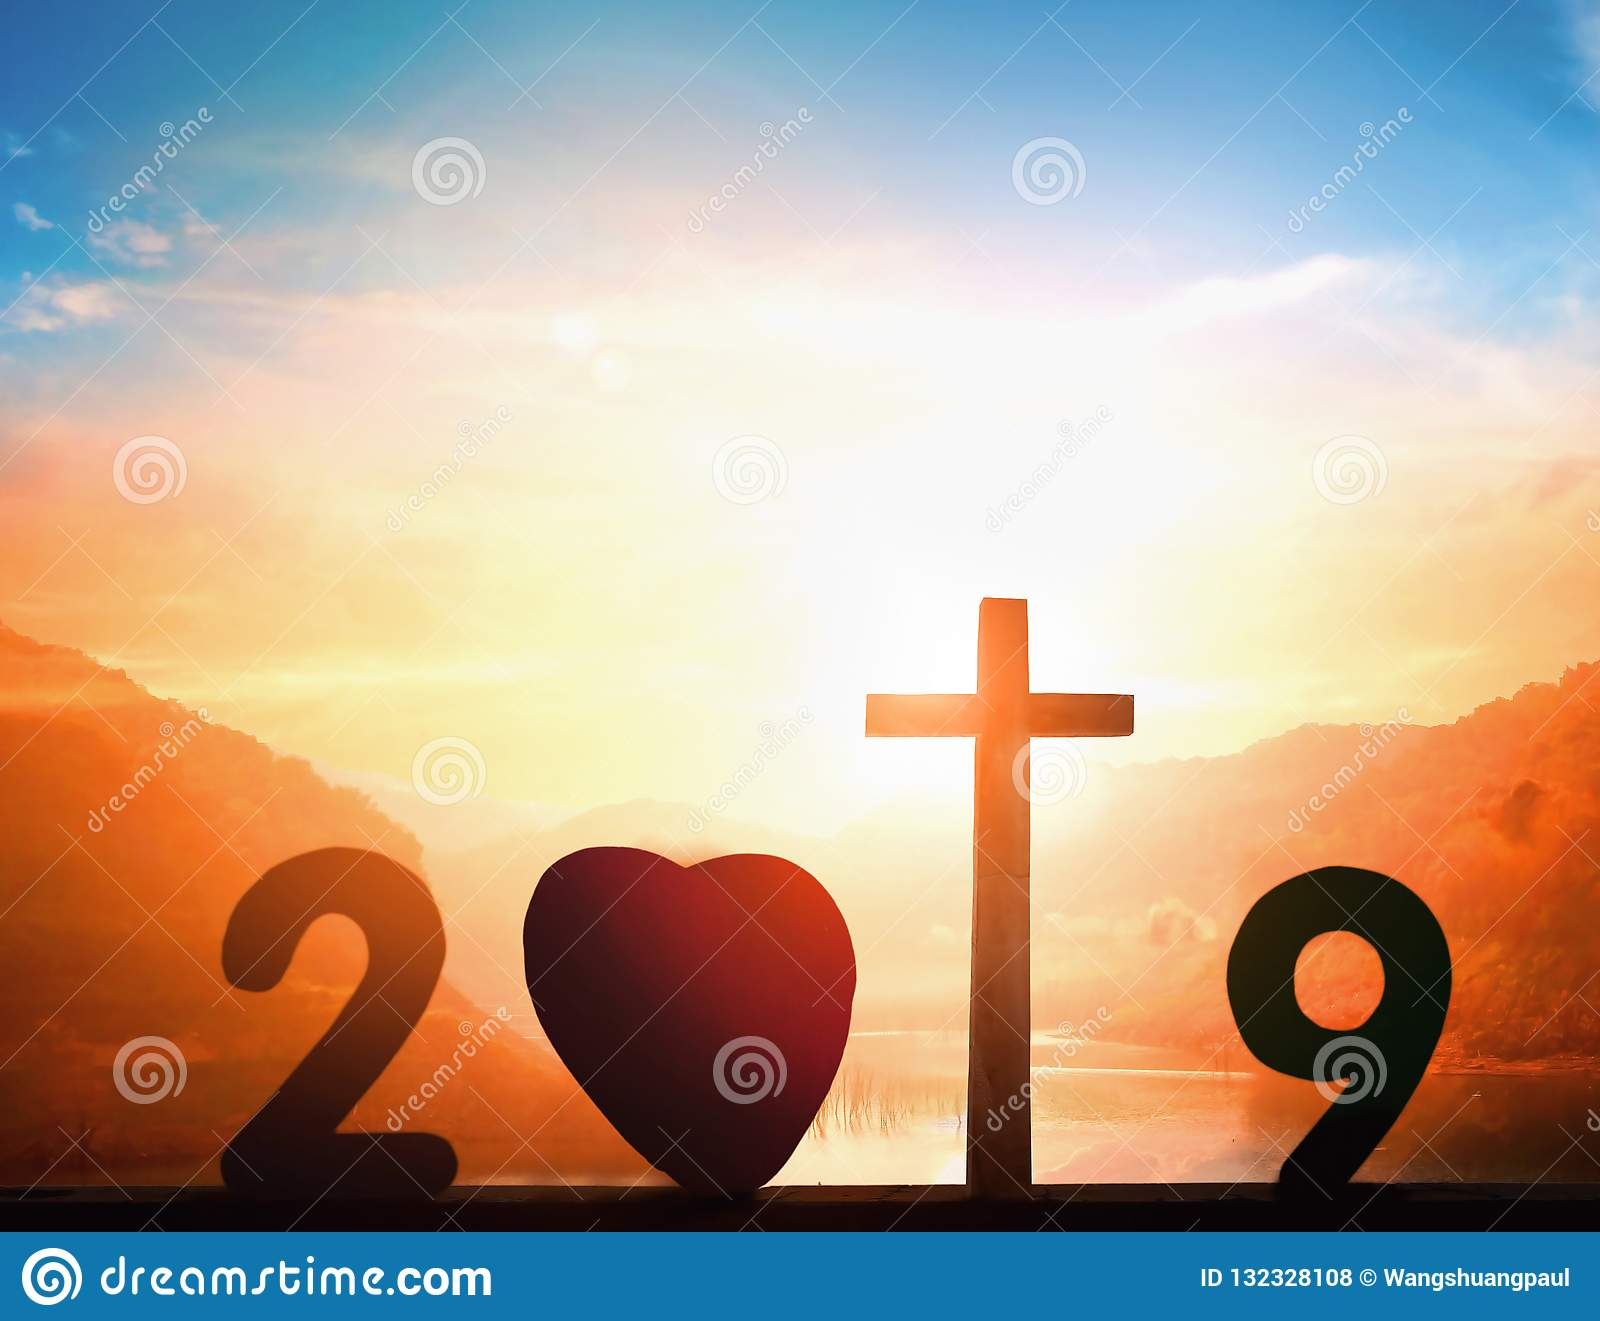 Christmas On Sunset 2019 2019 Christmas Concept: Cross Of Christ Jesus On Sunset Background